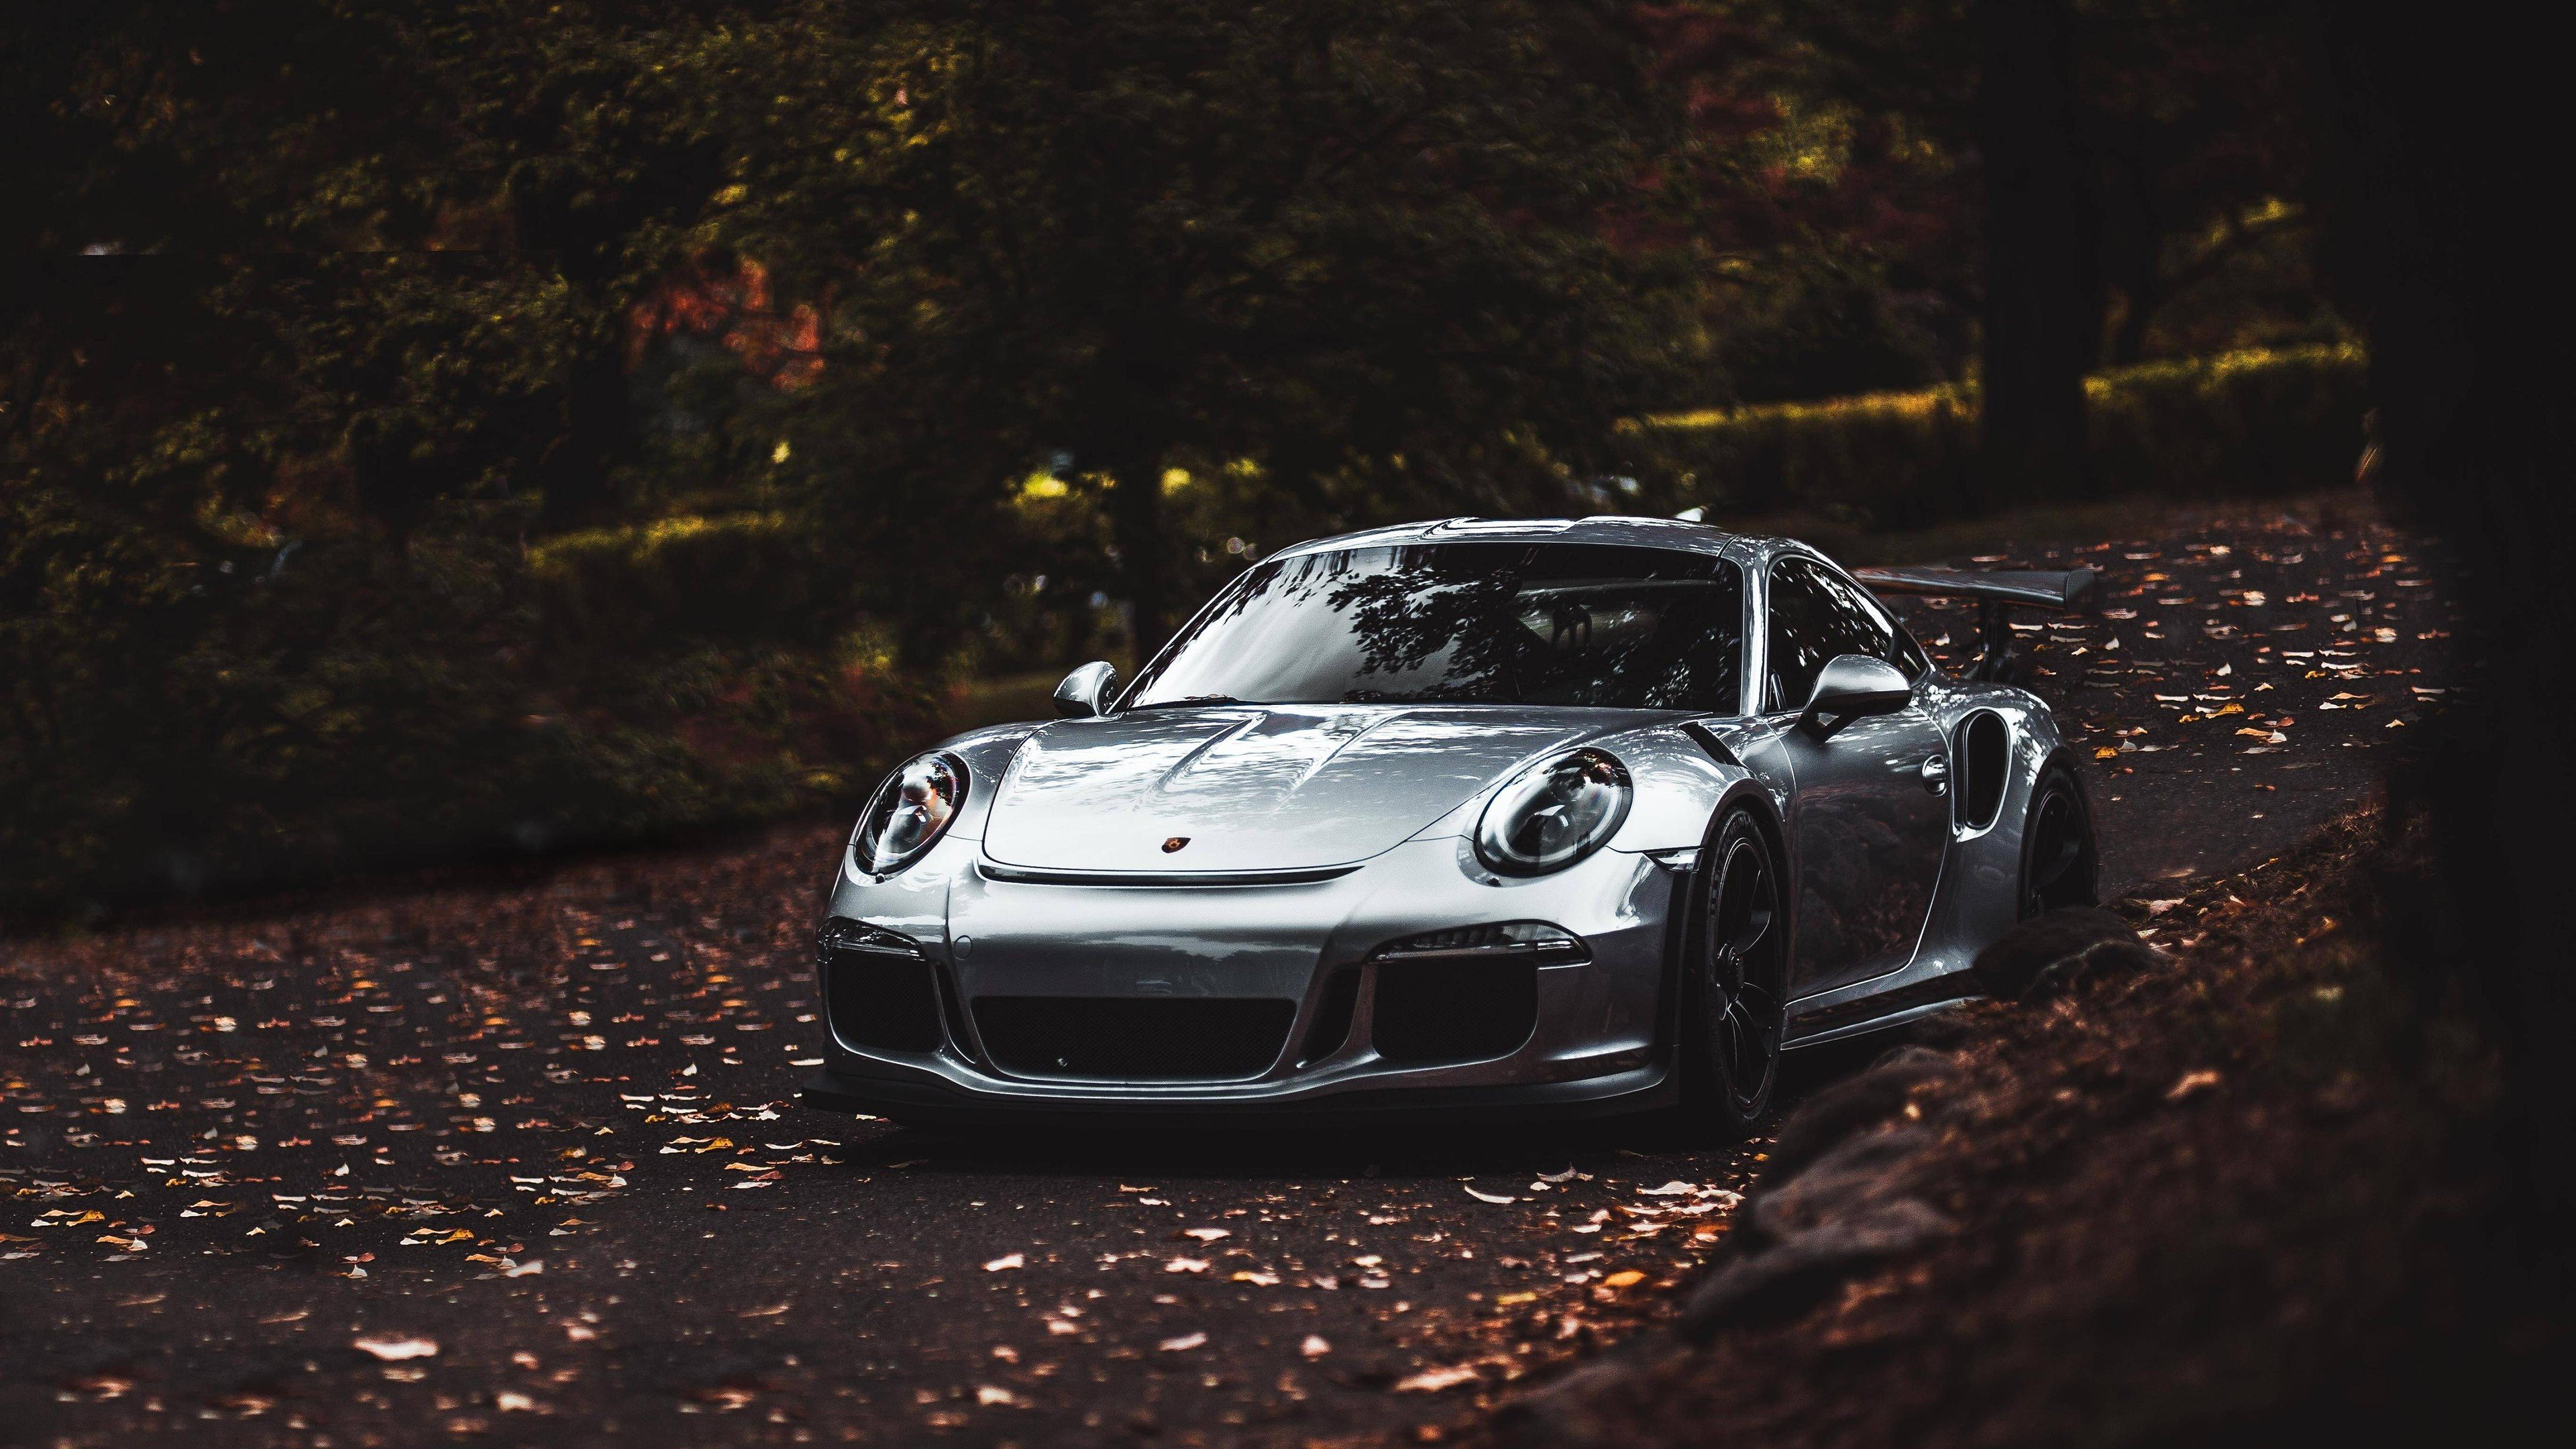 Photography Car Porsche 911 Carrera S Porsche Porsche 911 Gt3 Rs Hd Wallpapers Desktop And Mobile Images Photos